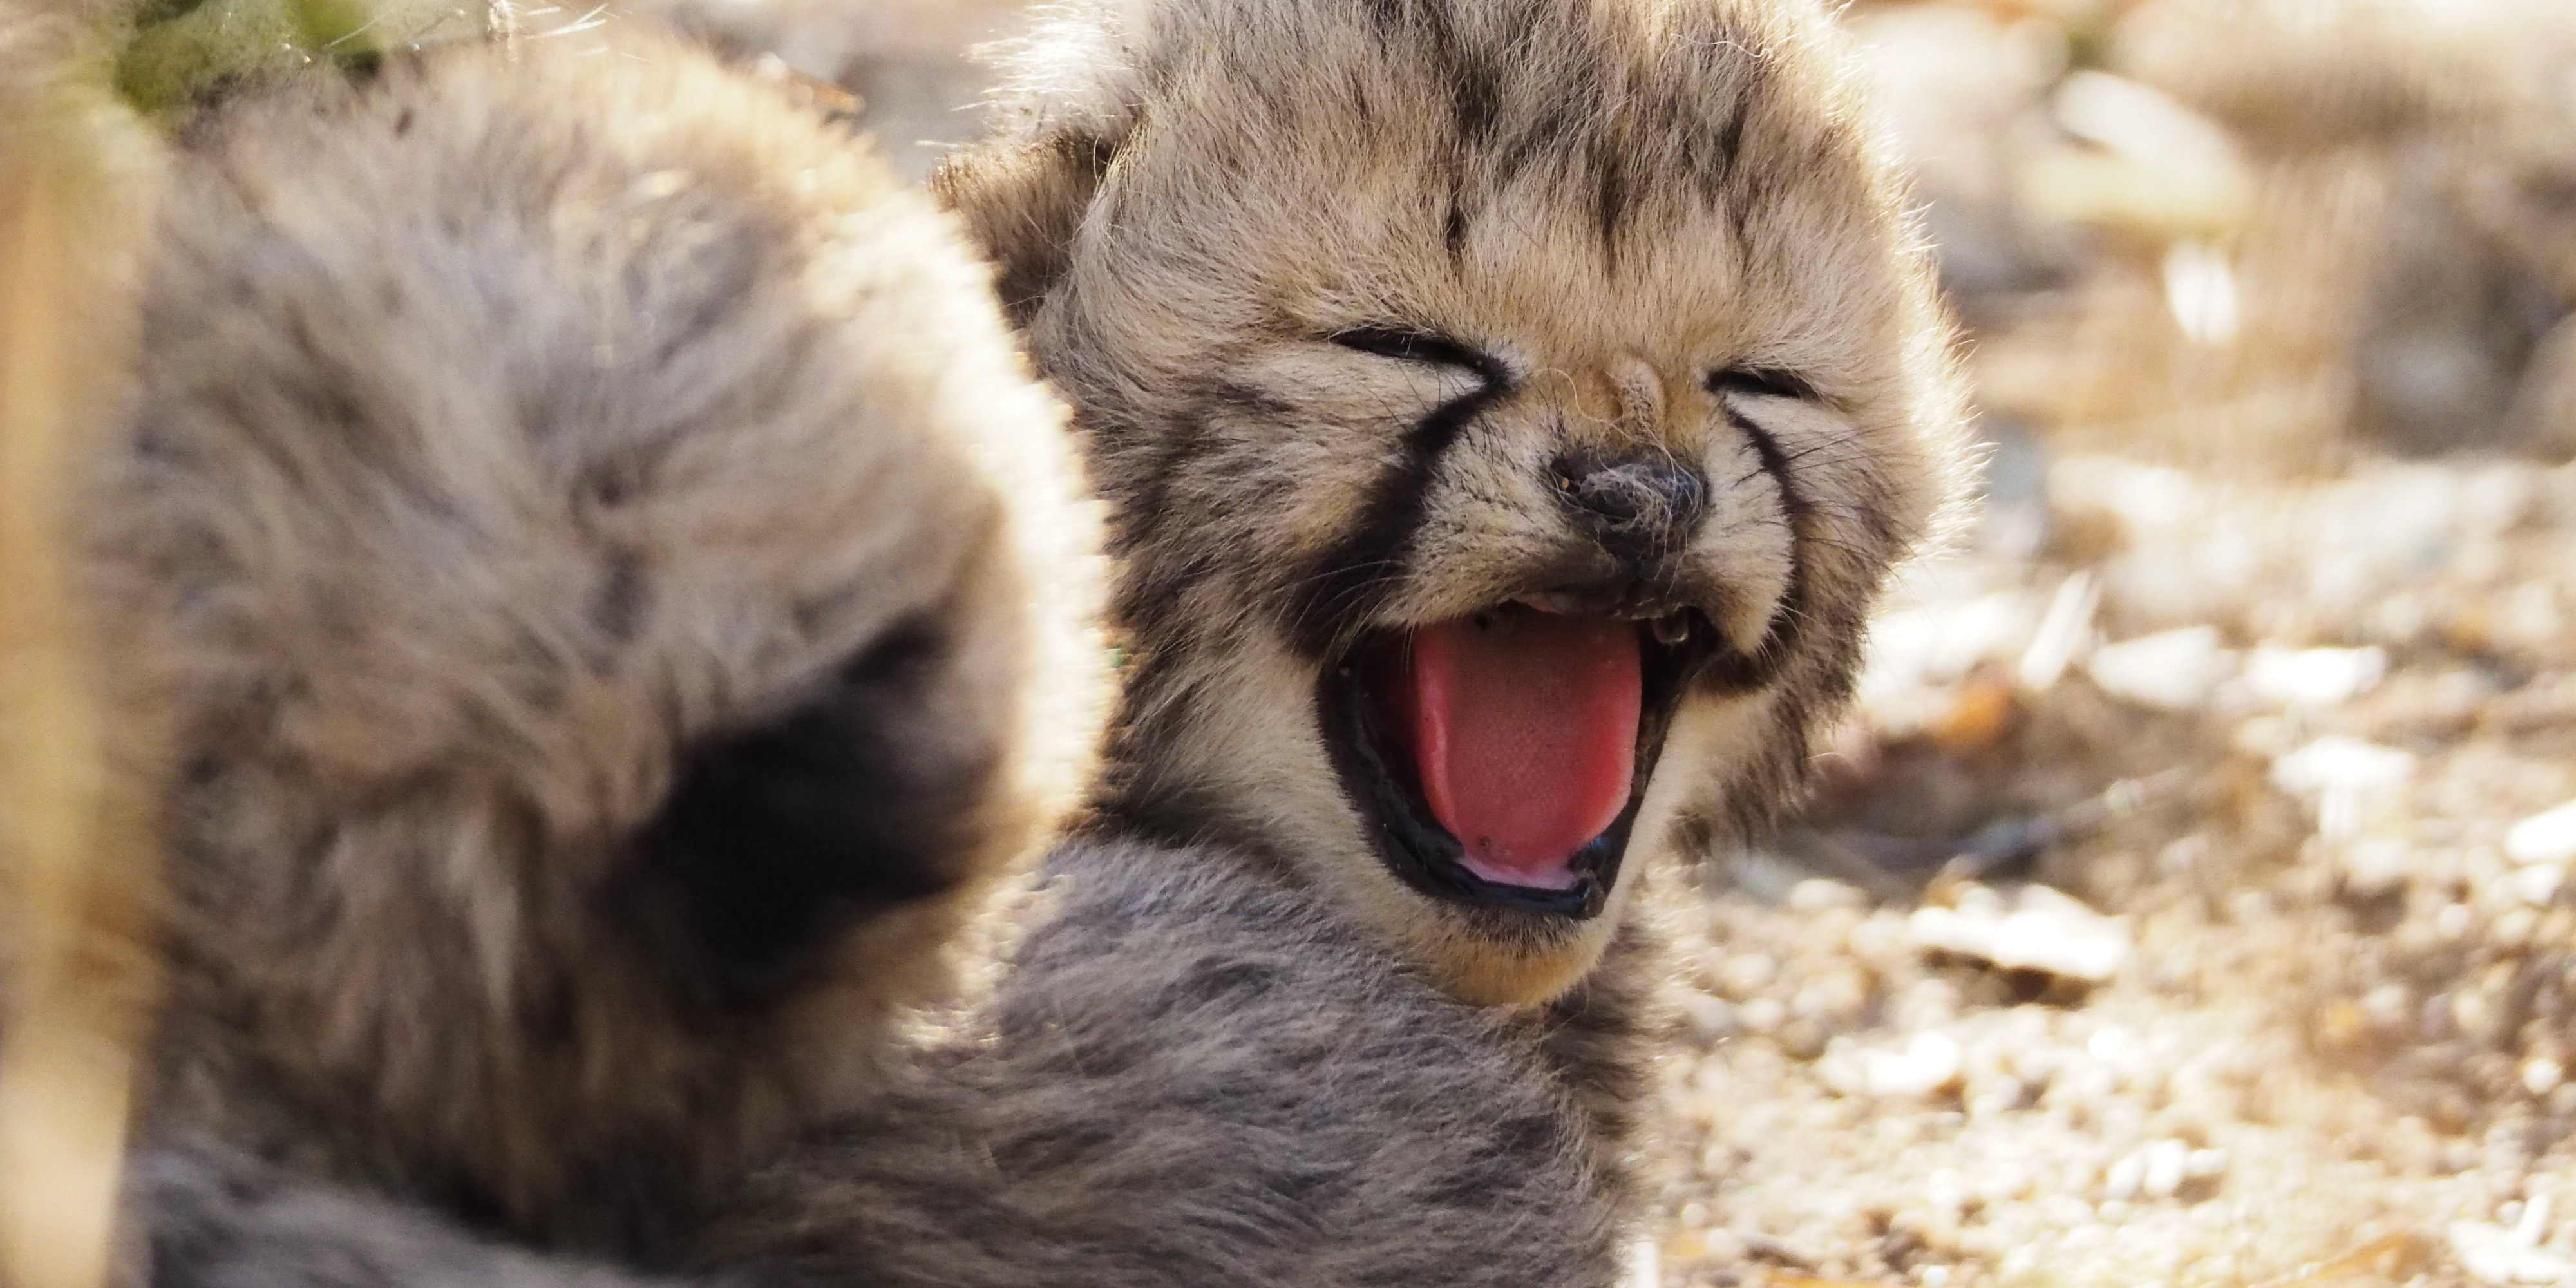 Cheetah cubs yawn. These cubs show the success of the reserve's cheetah conservation efforts.